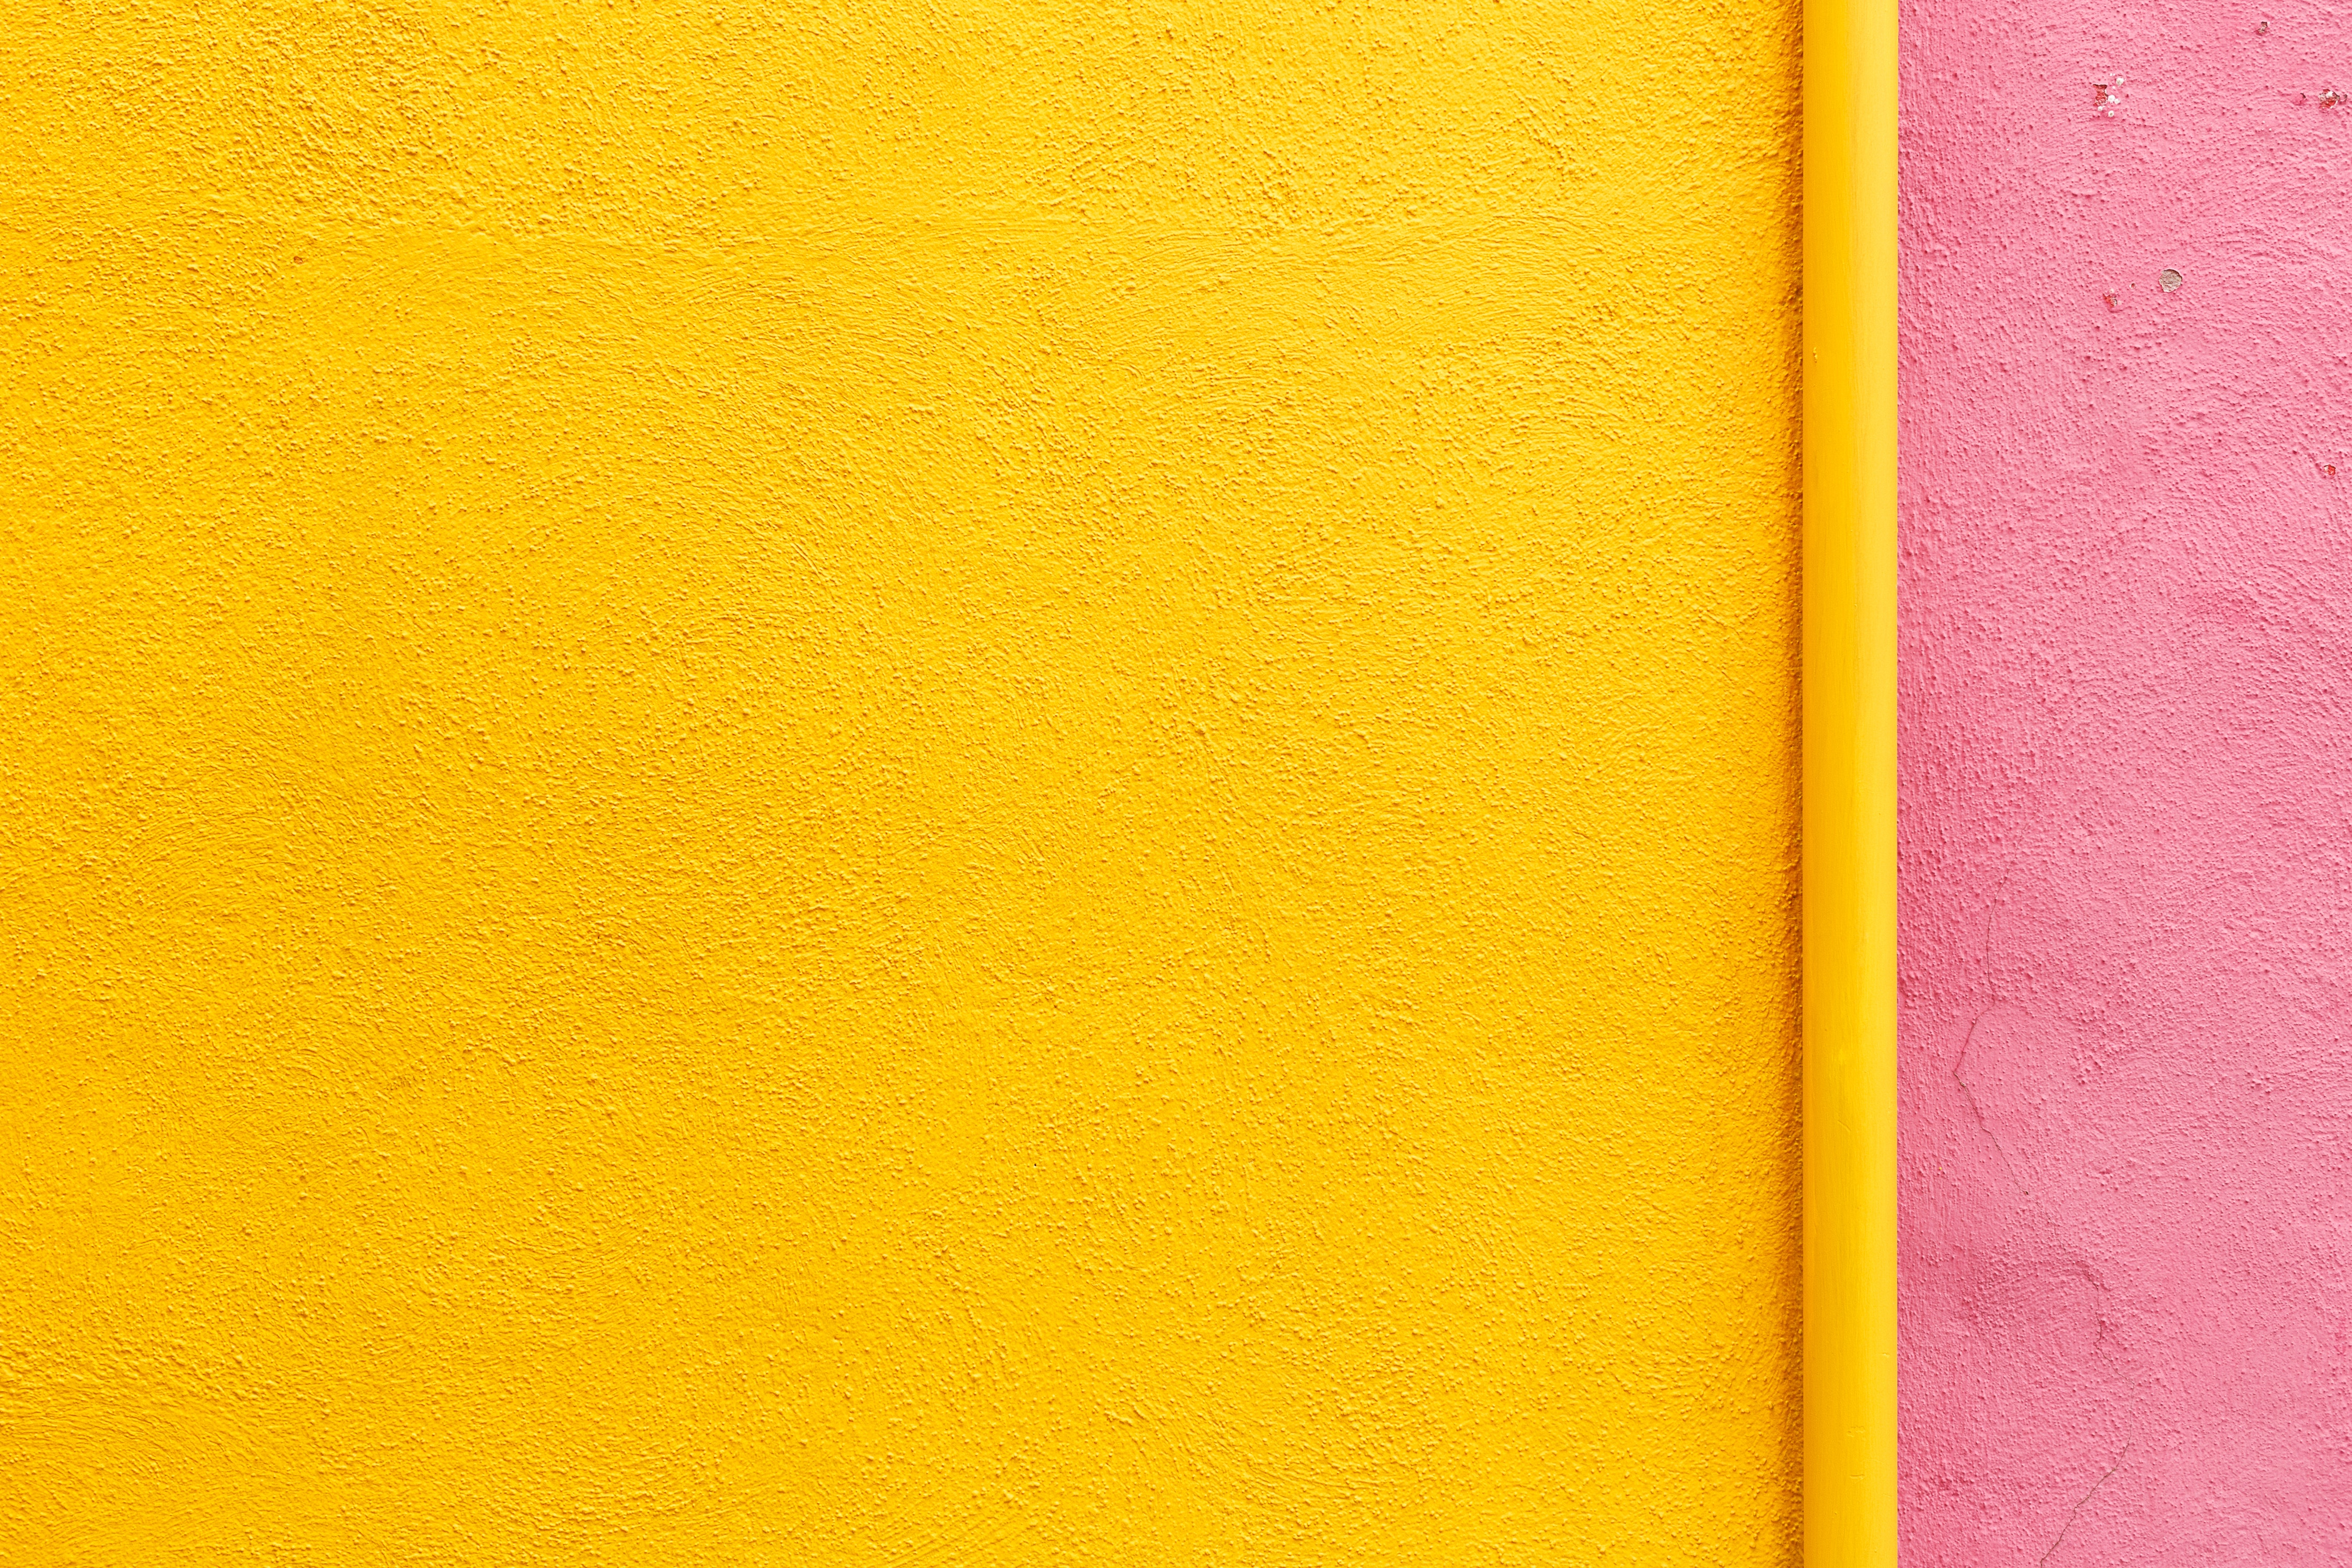 yellow and pink wall